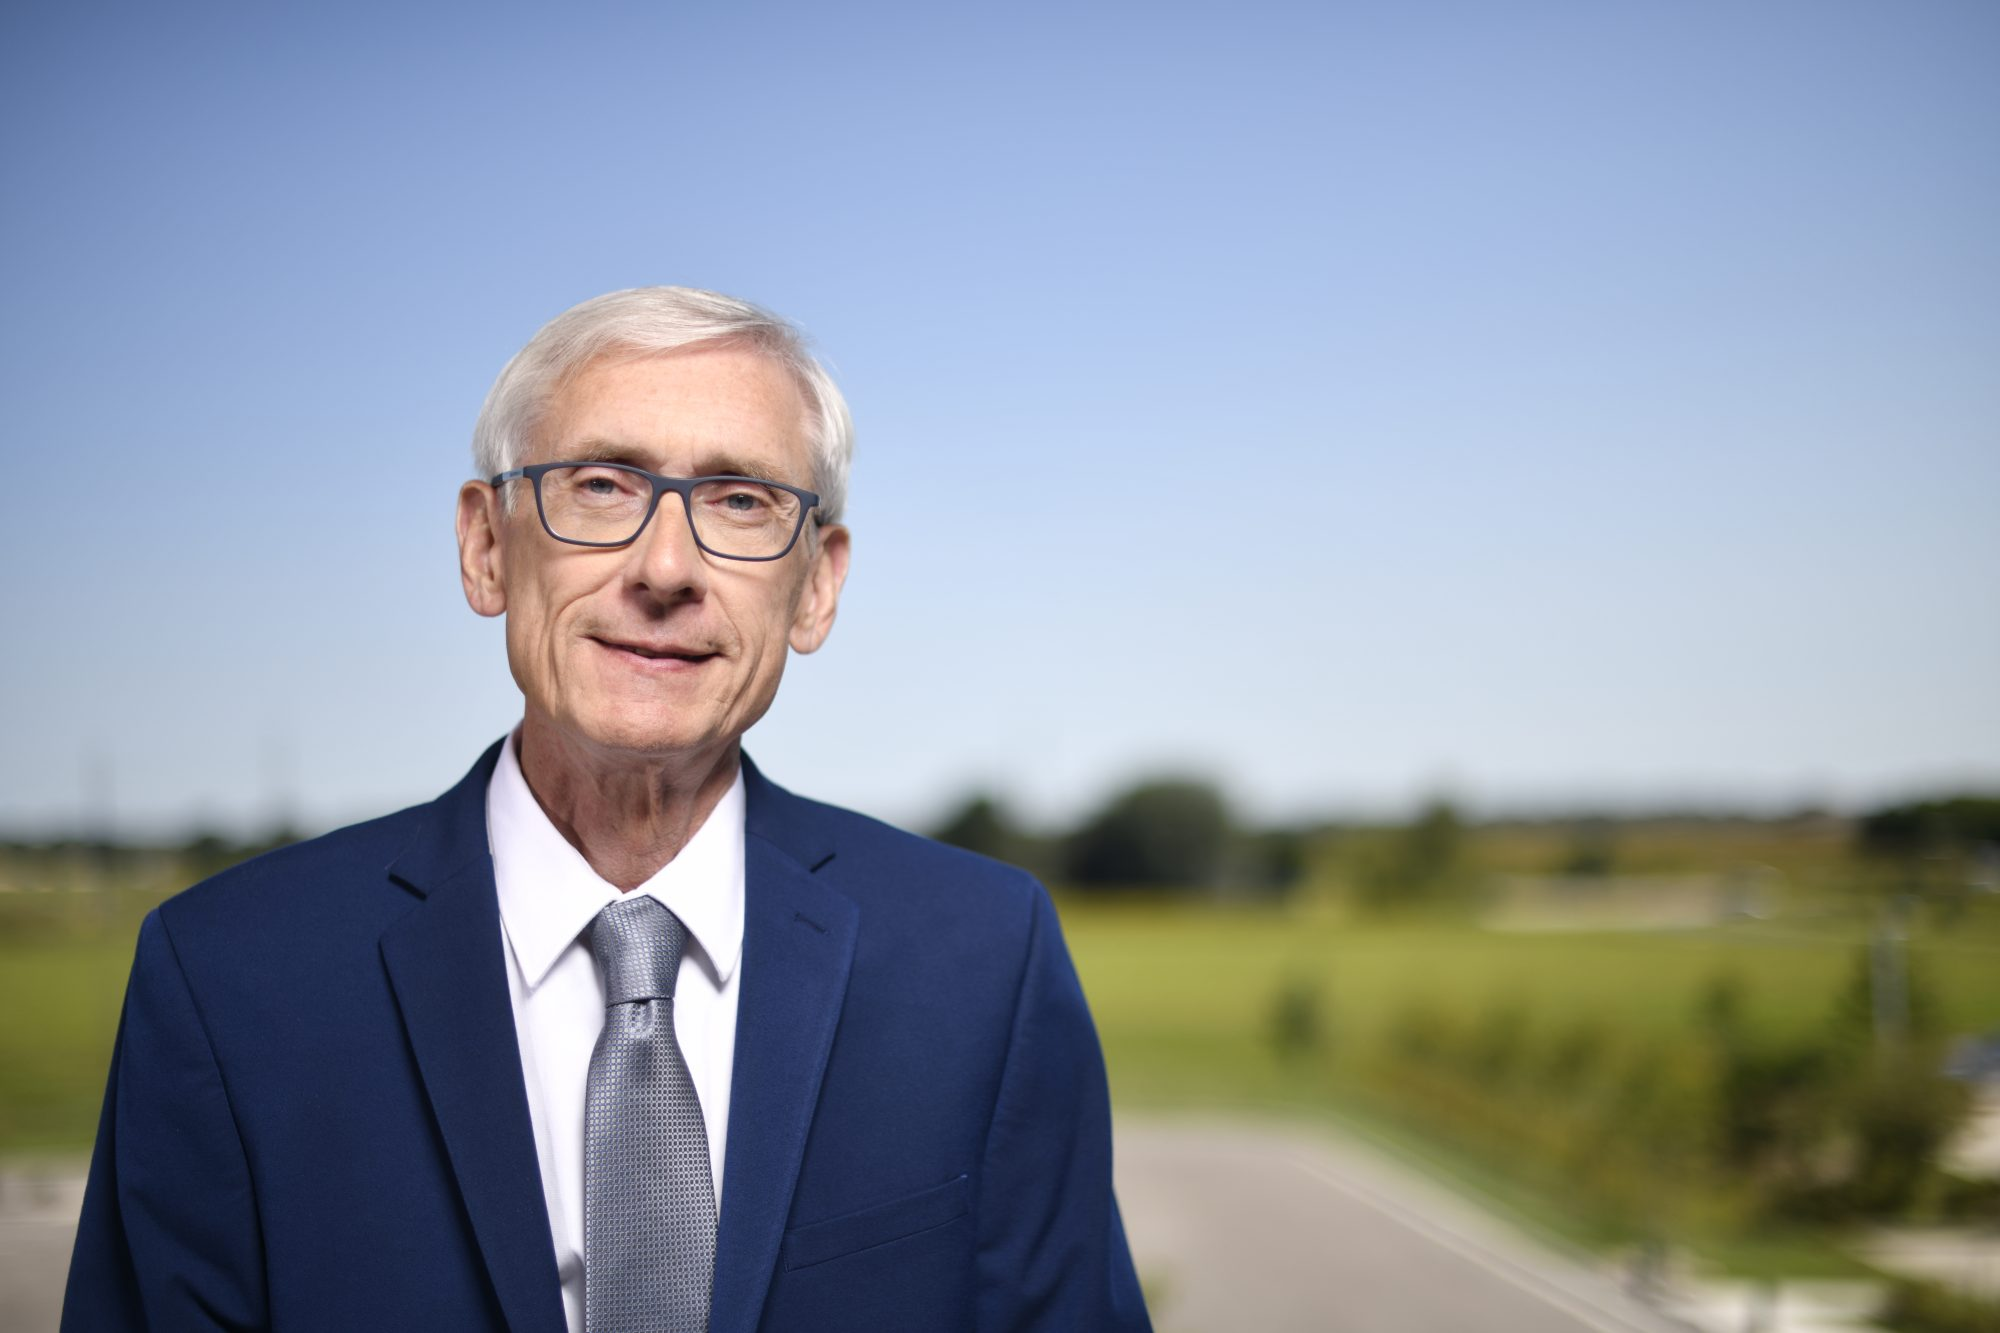 Gov. Evers Signs Executive Order #43 Recreating the Governor's Juvenile Justice Commission